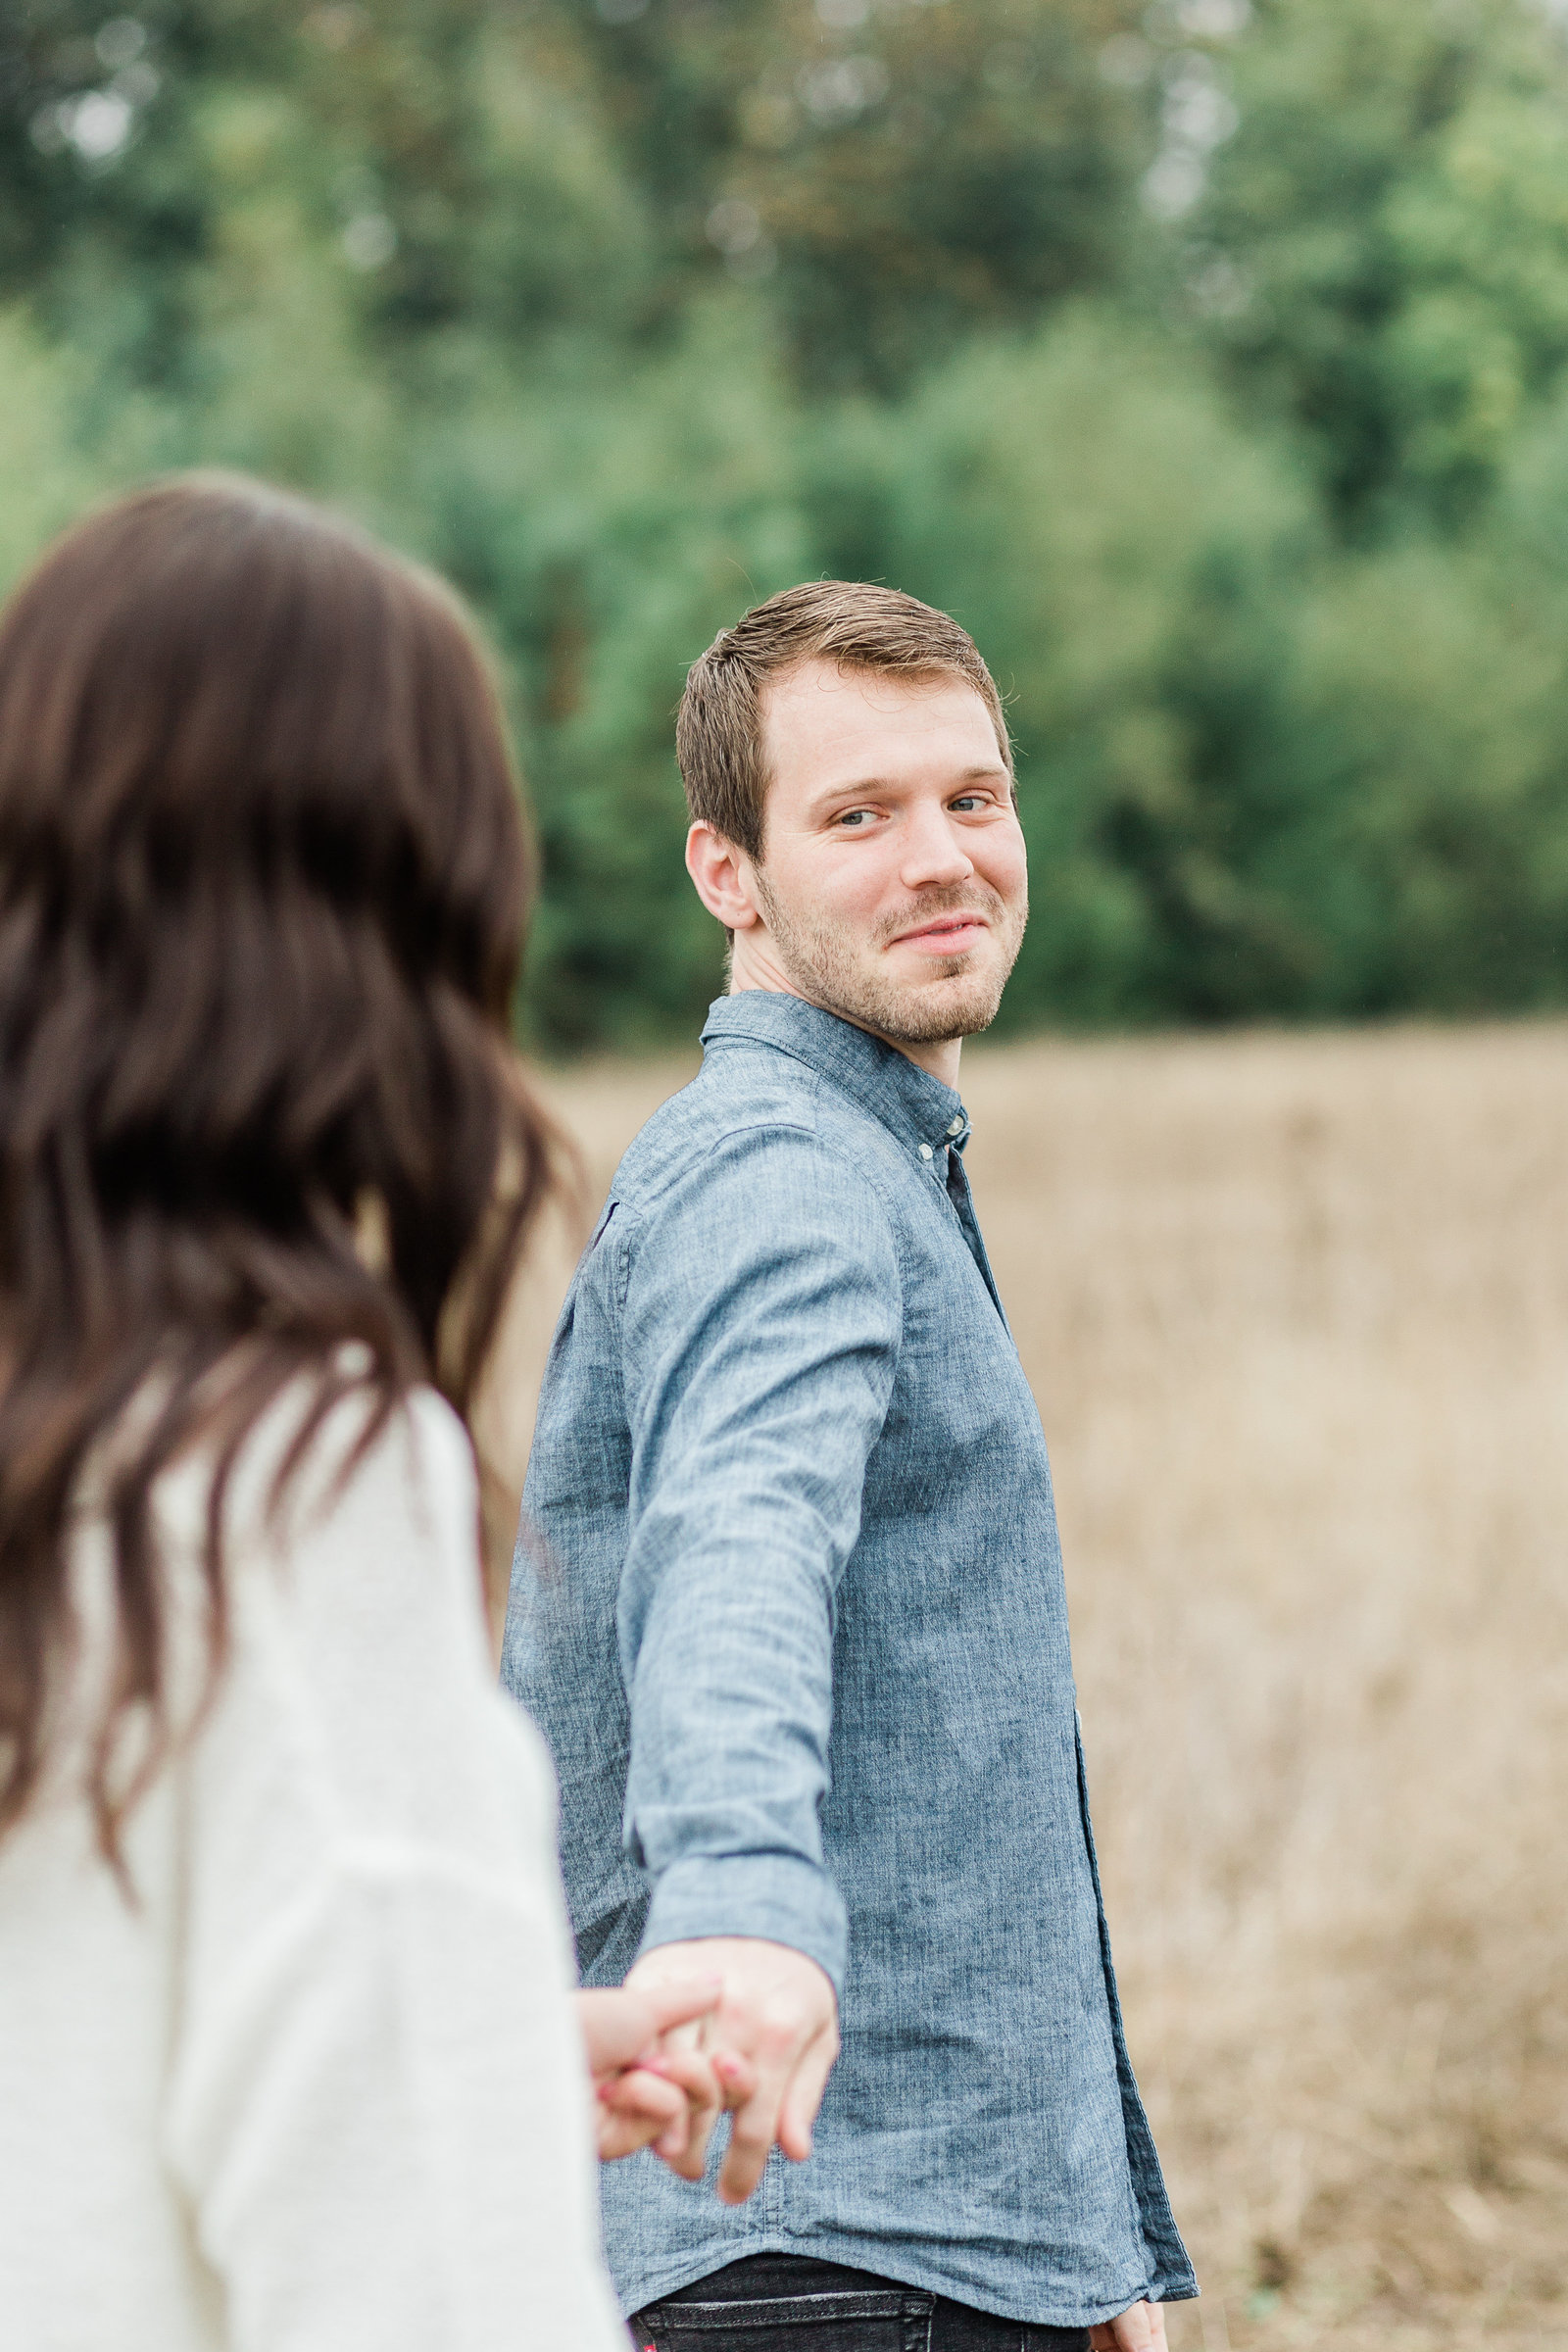 Taylor-TJ-Engagements-Georgia-Ruth-Photography-33